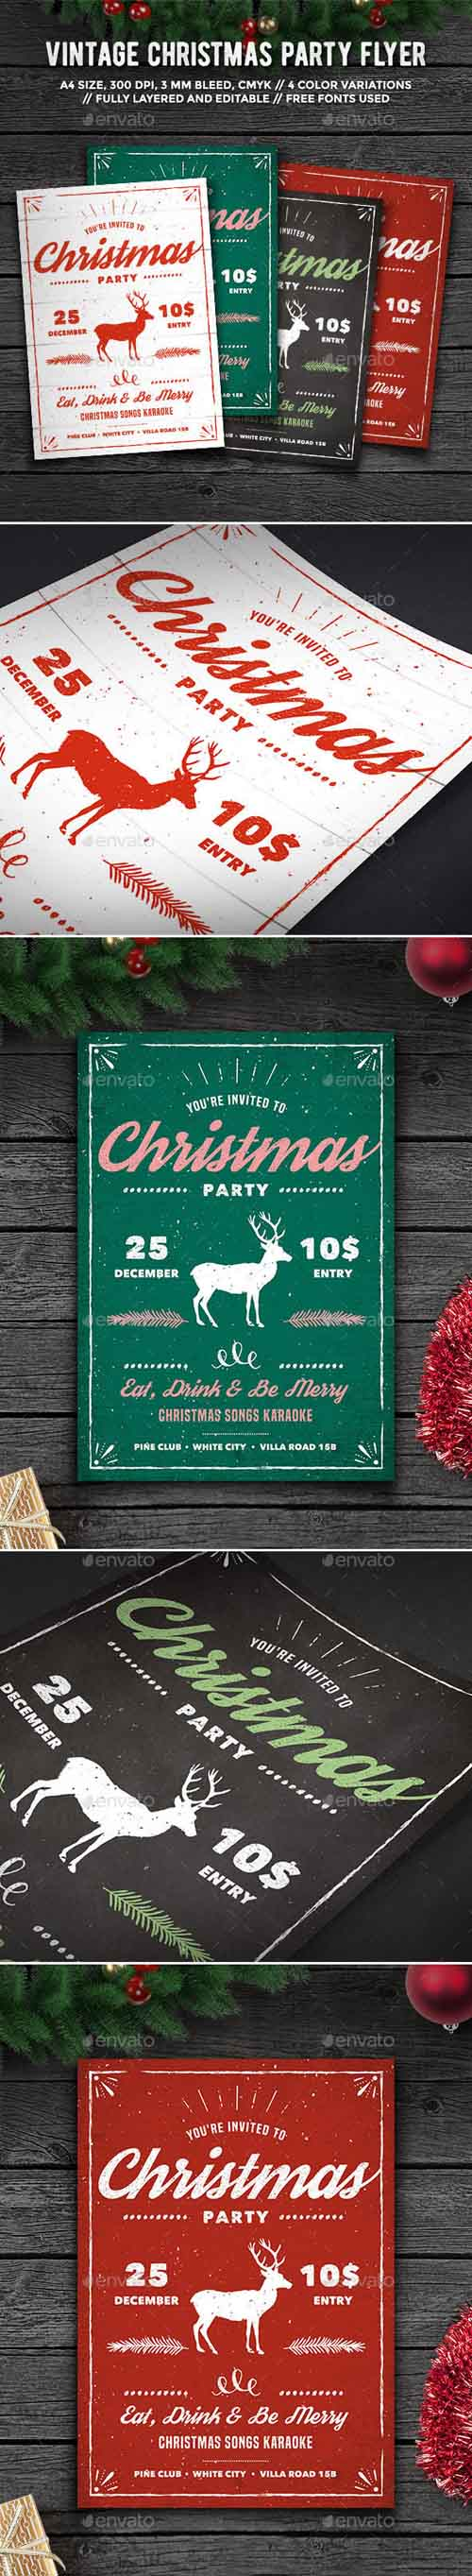 Vintage Christmas Party Flyer 13839276